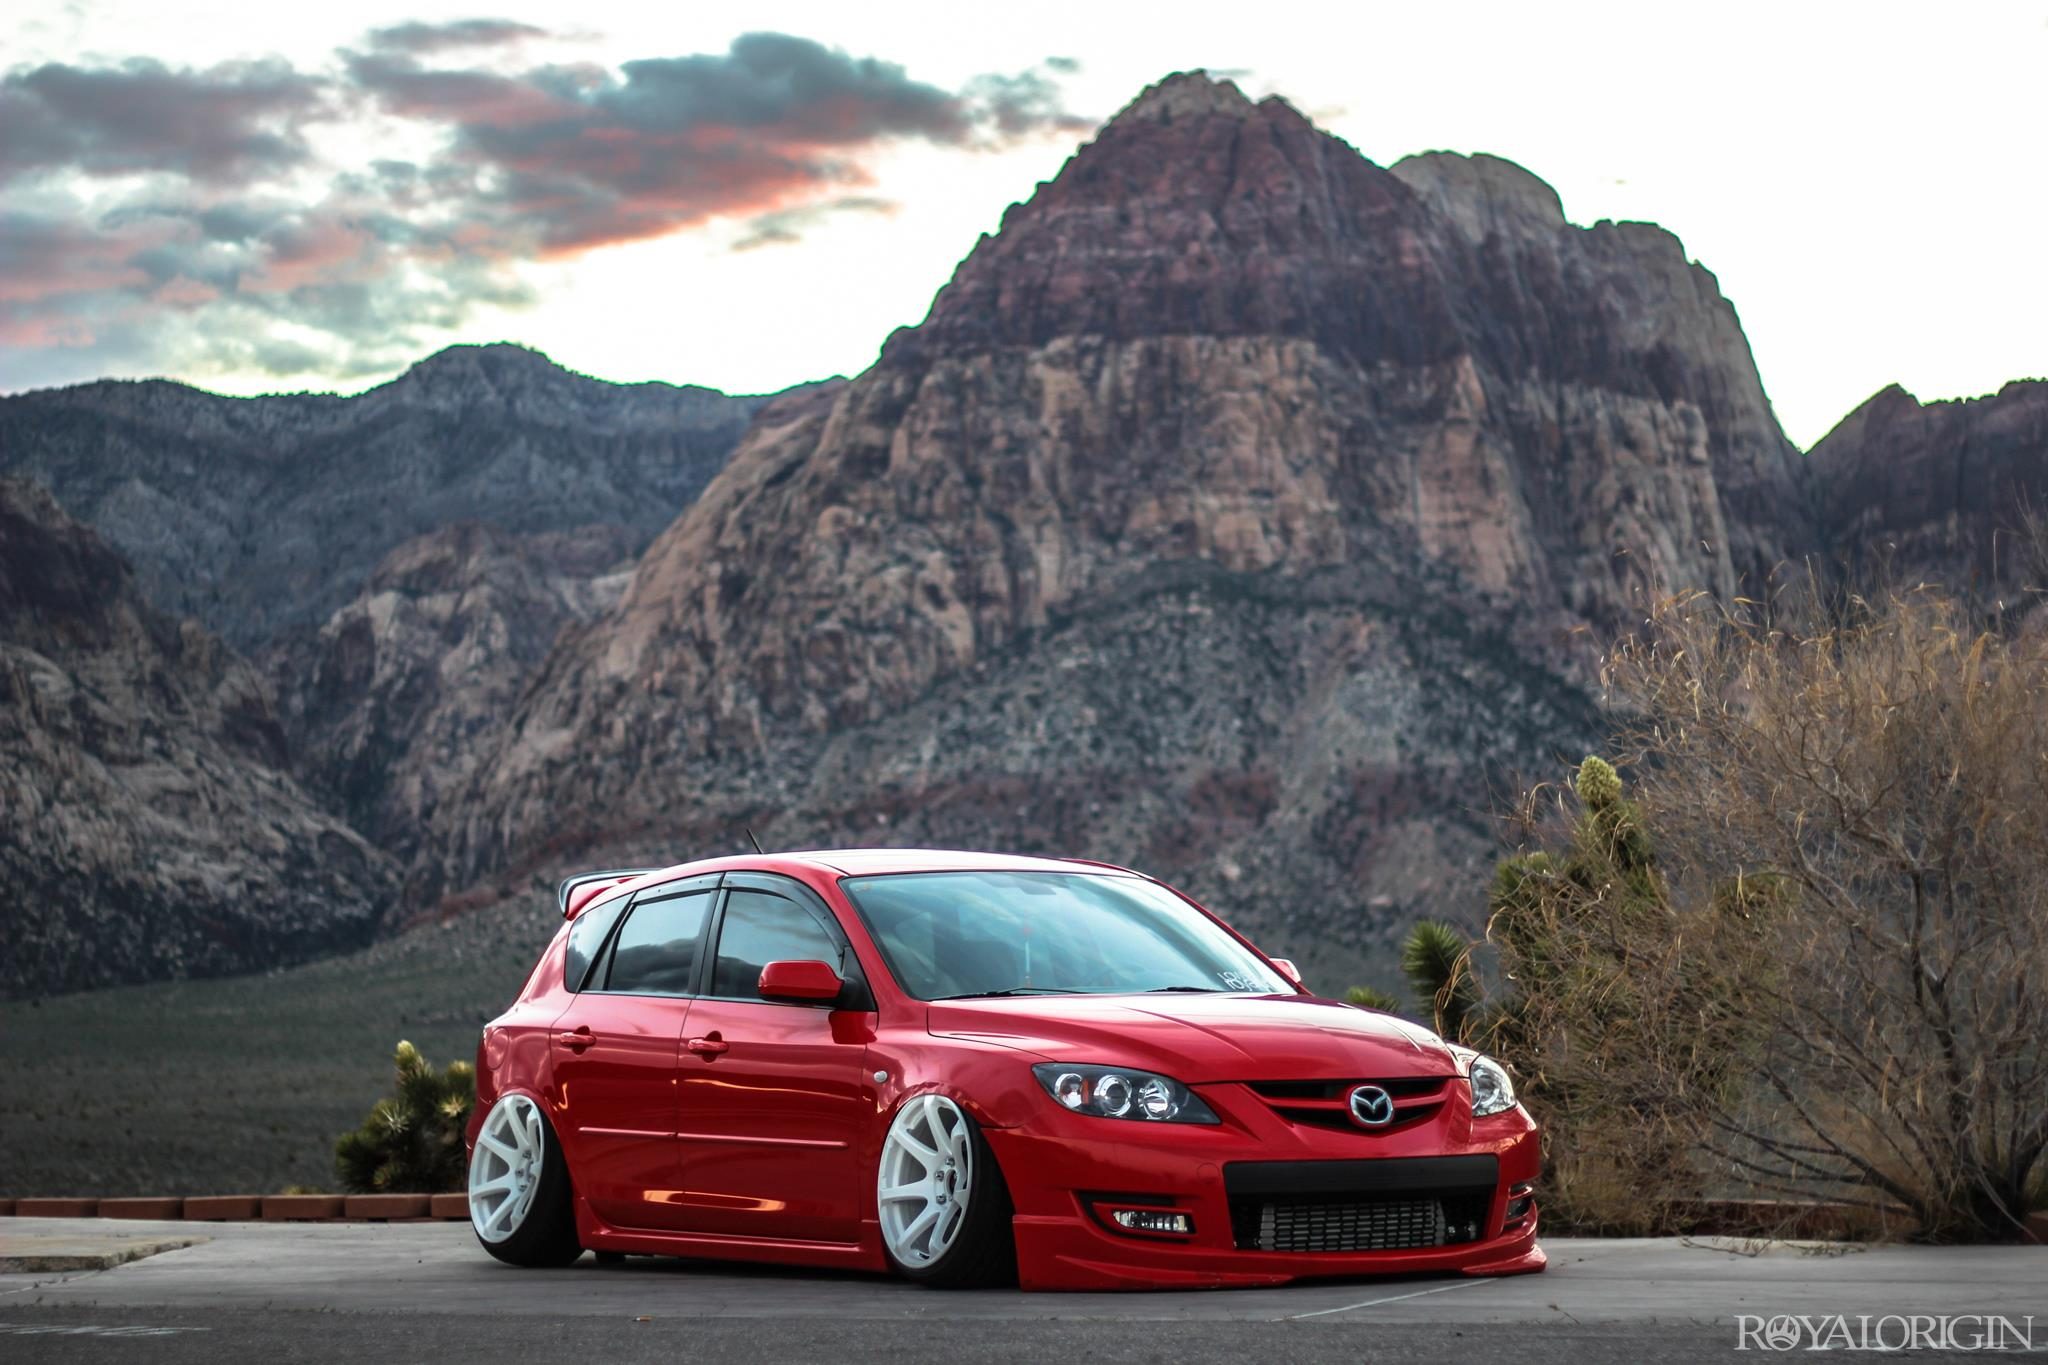 MazdaSpeed3 wallpaper   hdwallpaper20com 2048x1365